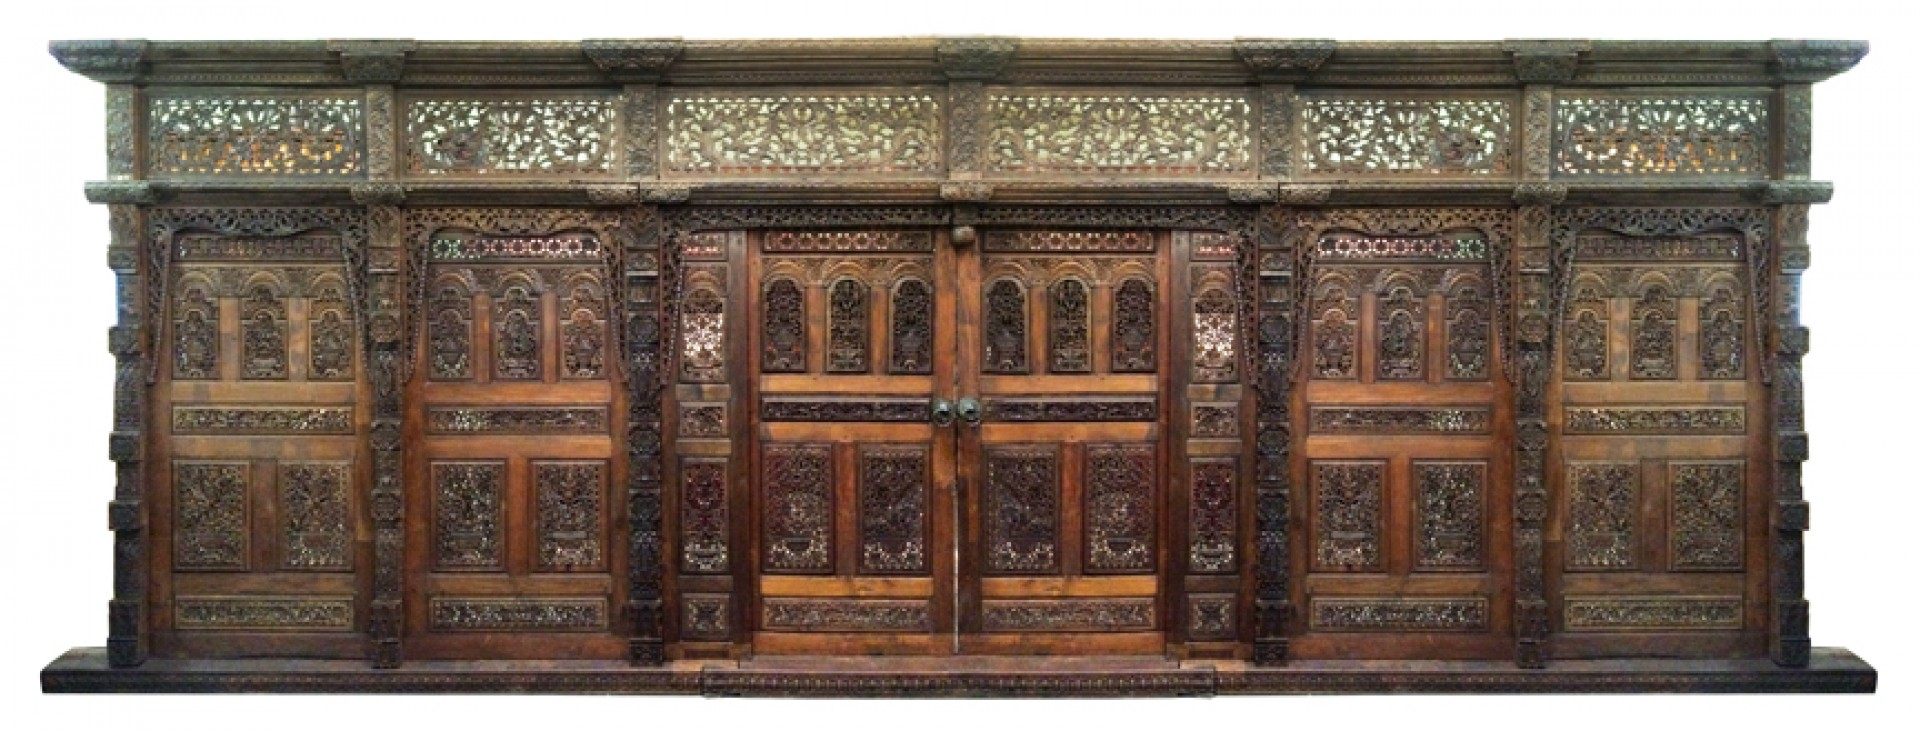 Ra389 real teak yogi wall from india 10 h x 24 w for Architecture antique